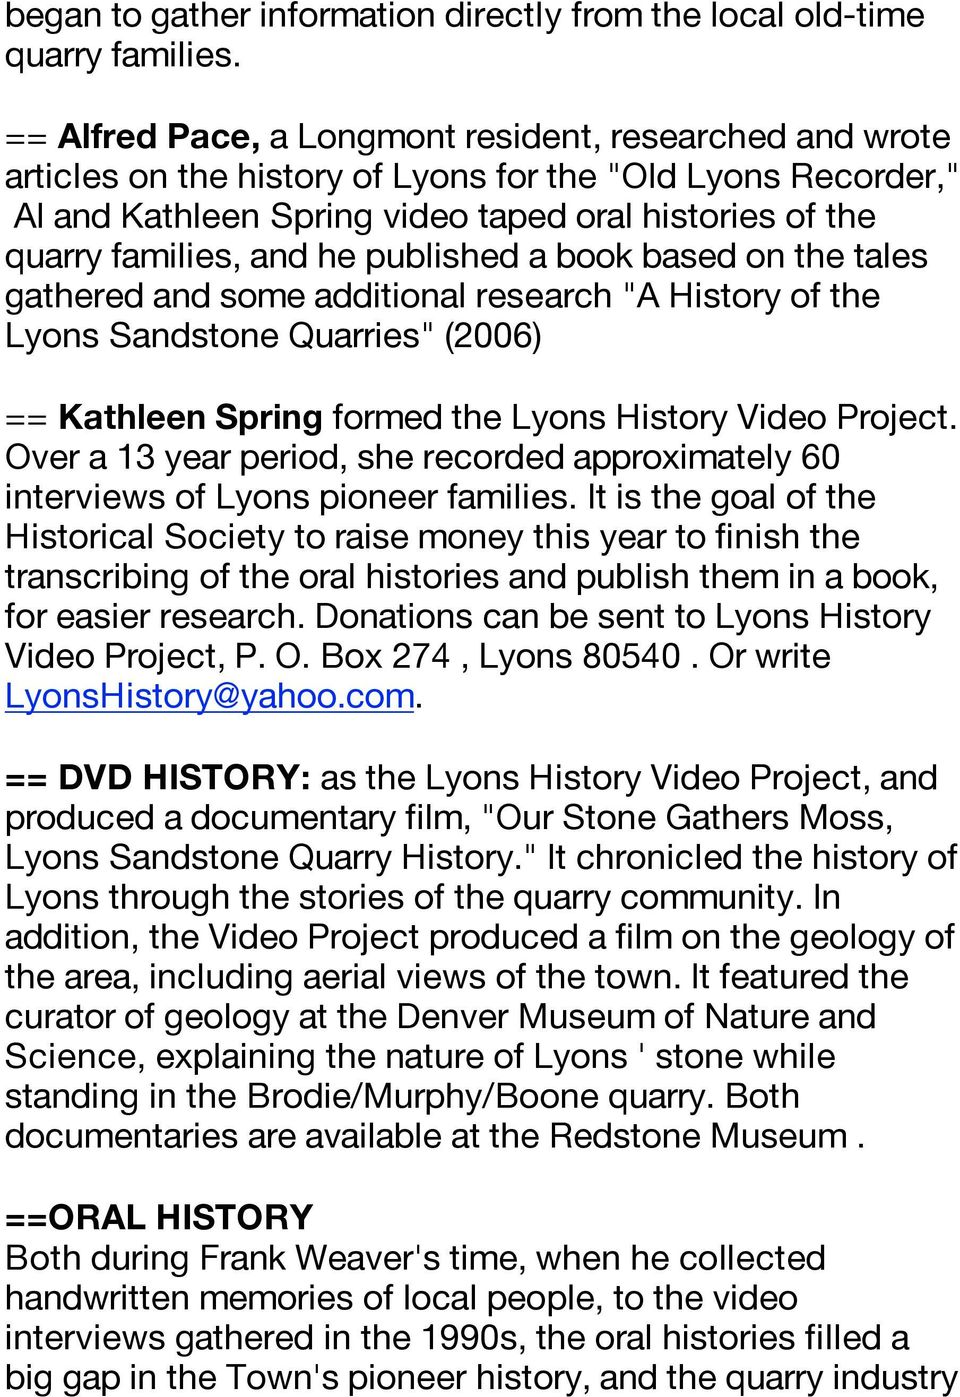 "he published a book based on the tales gathered and some additional research ""A History of the Lyons Sandstone Quarries"" (2006) == Kathleen Spring formed the Lyons History Video Project."